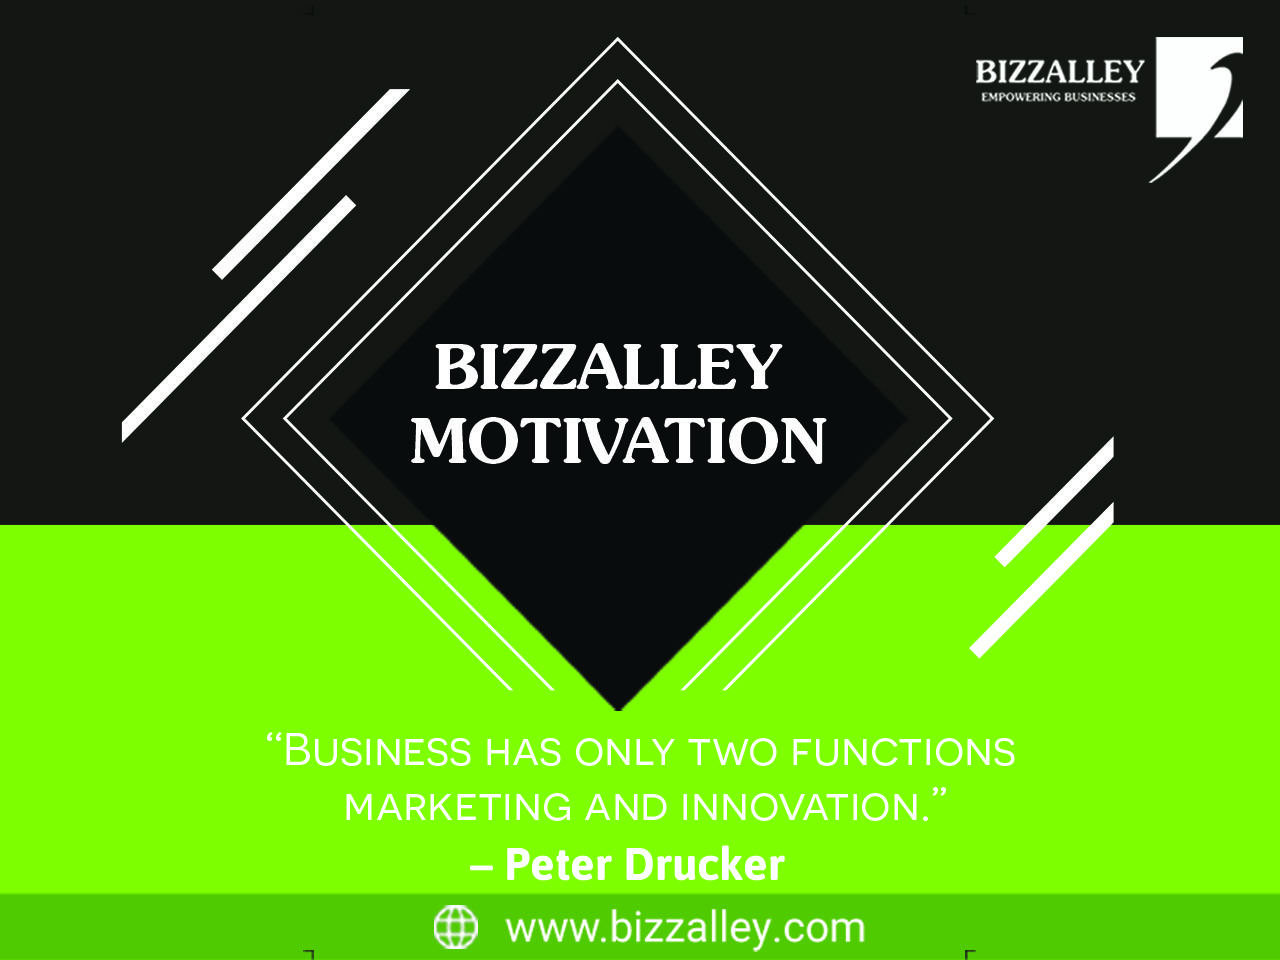 It is Really Important to Motivate Your Business